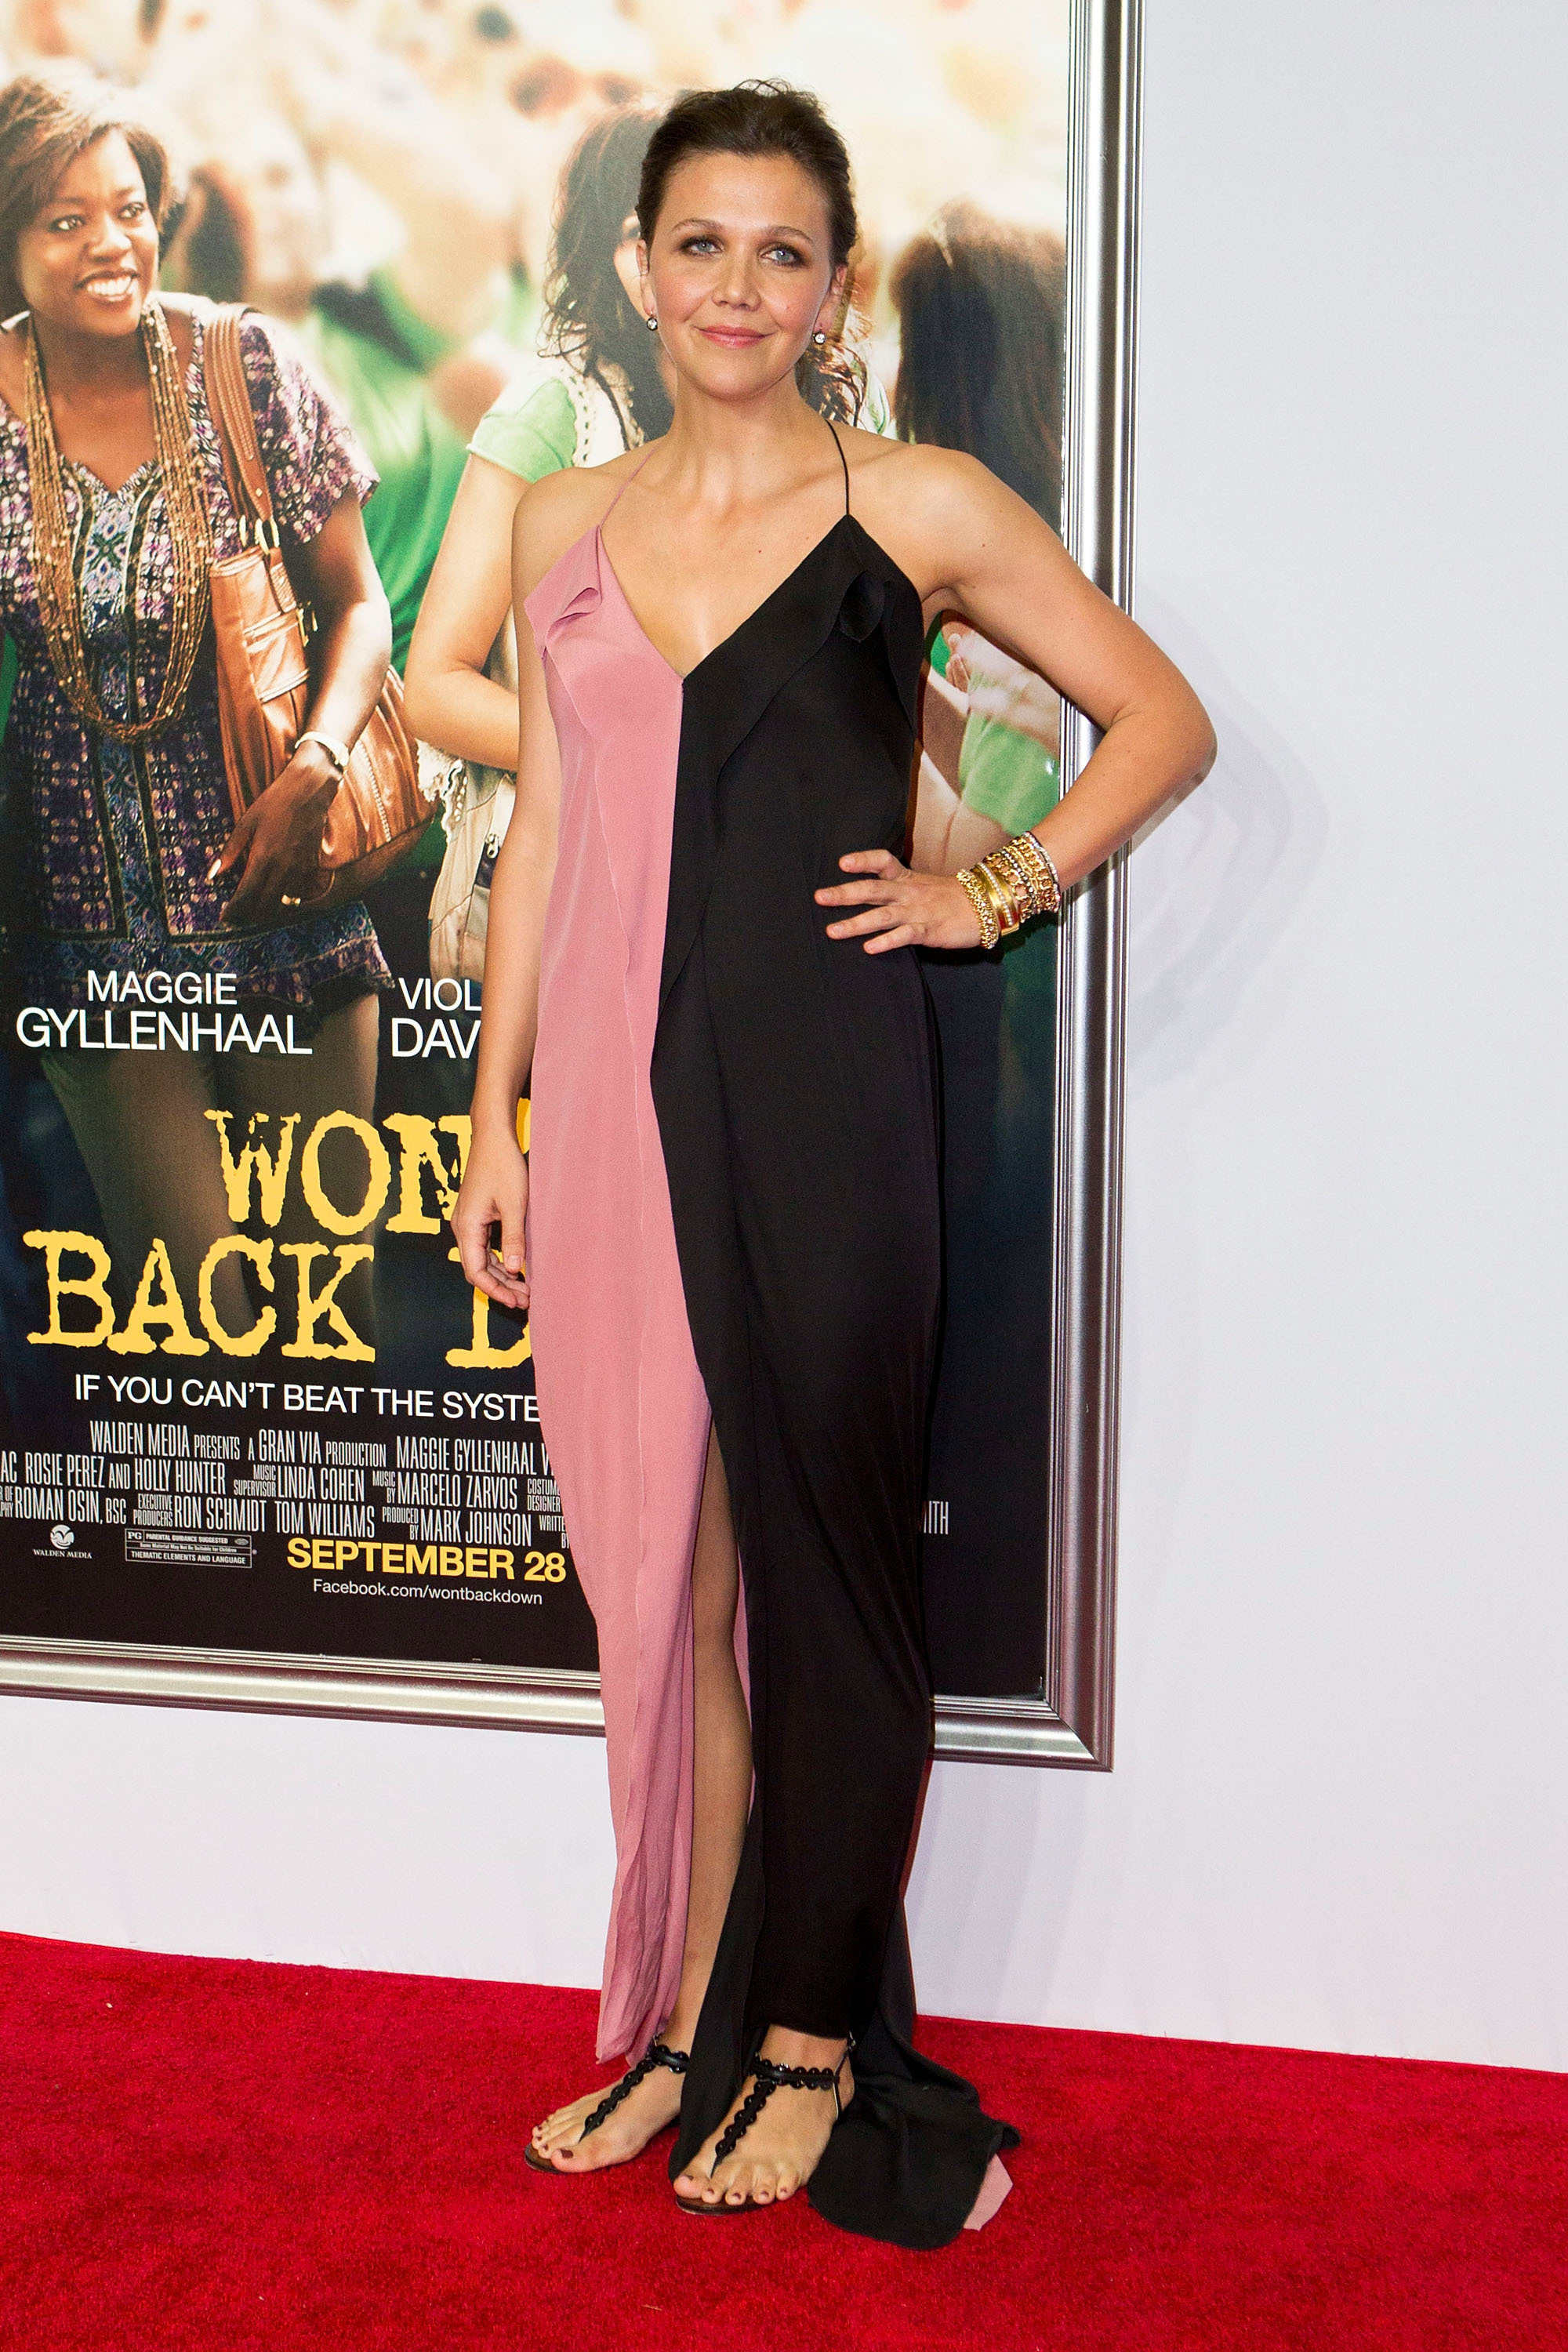 Maggie Gyllenhaal pink and black dress sandals